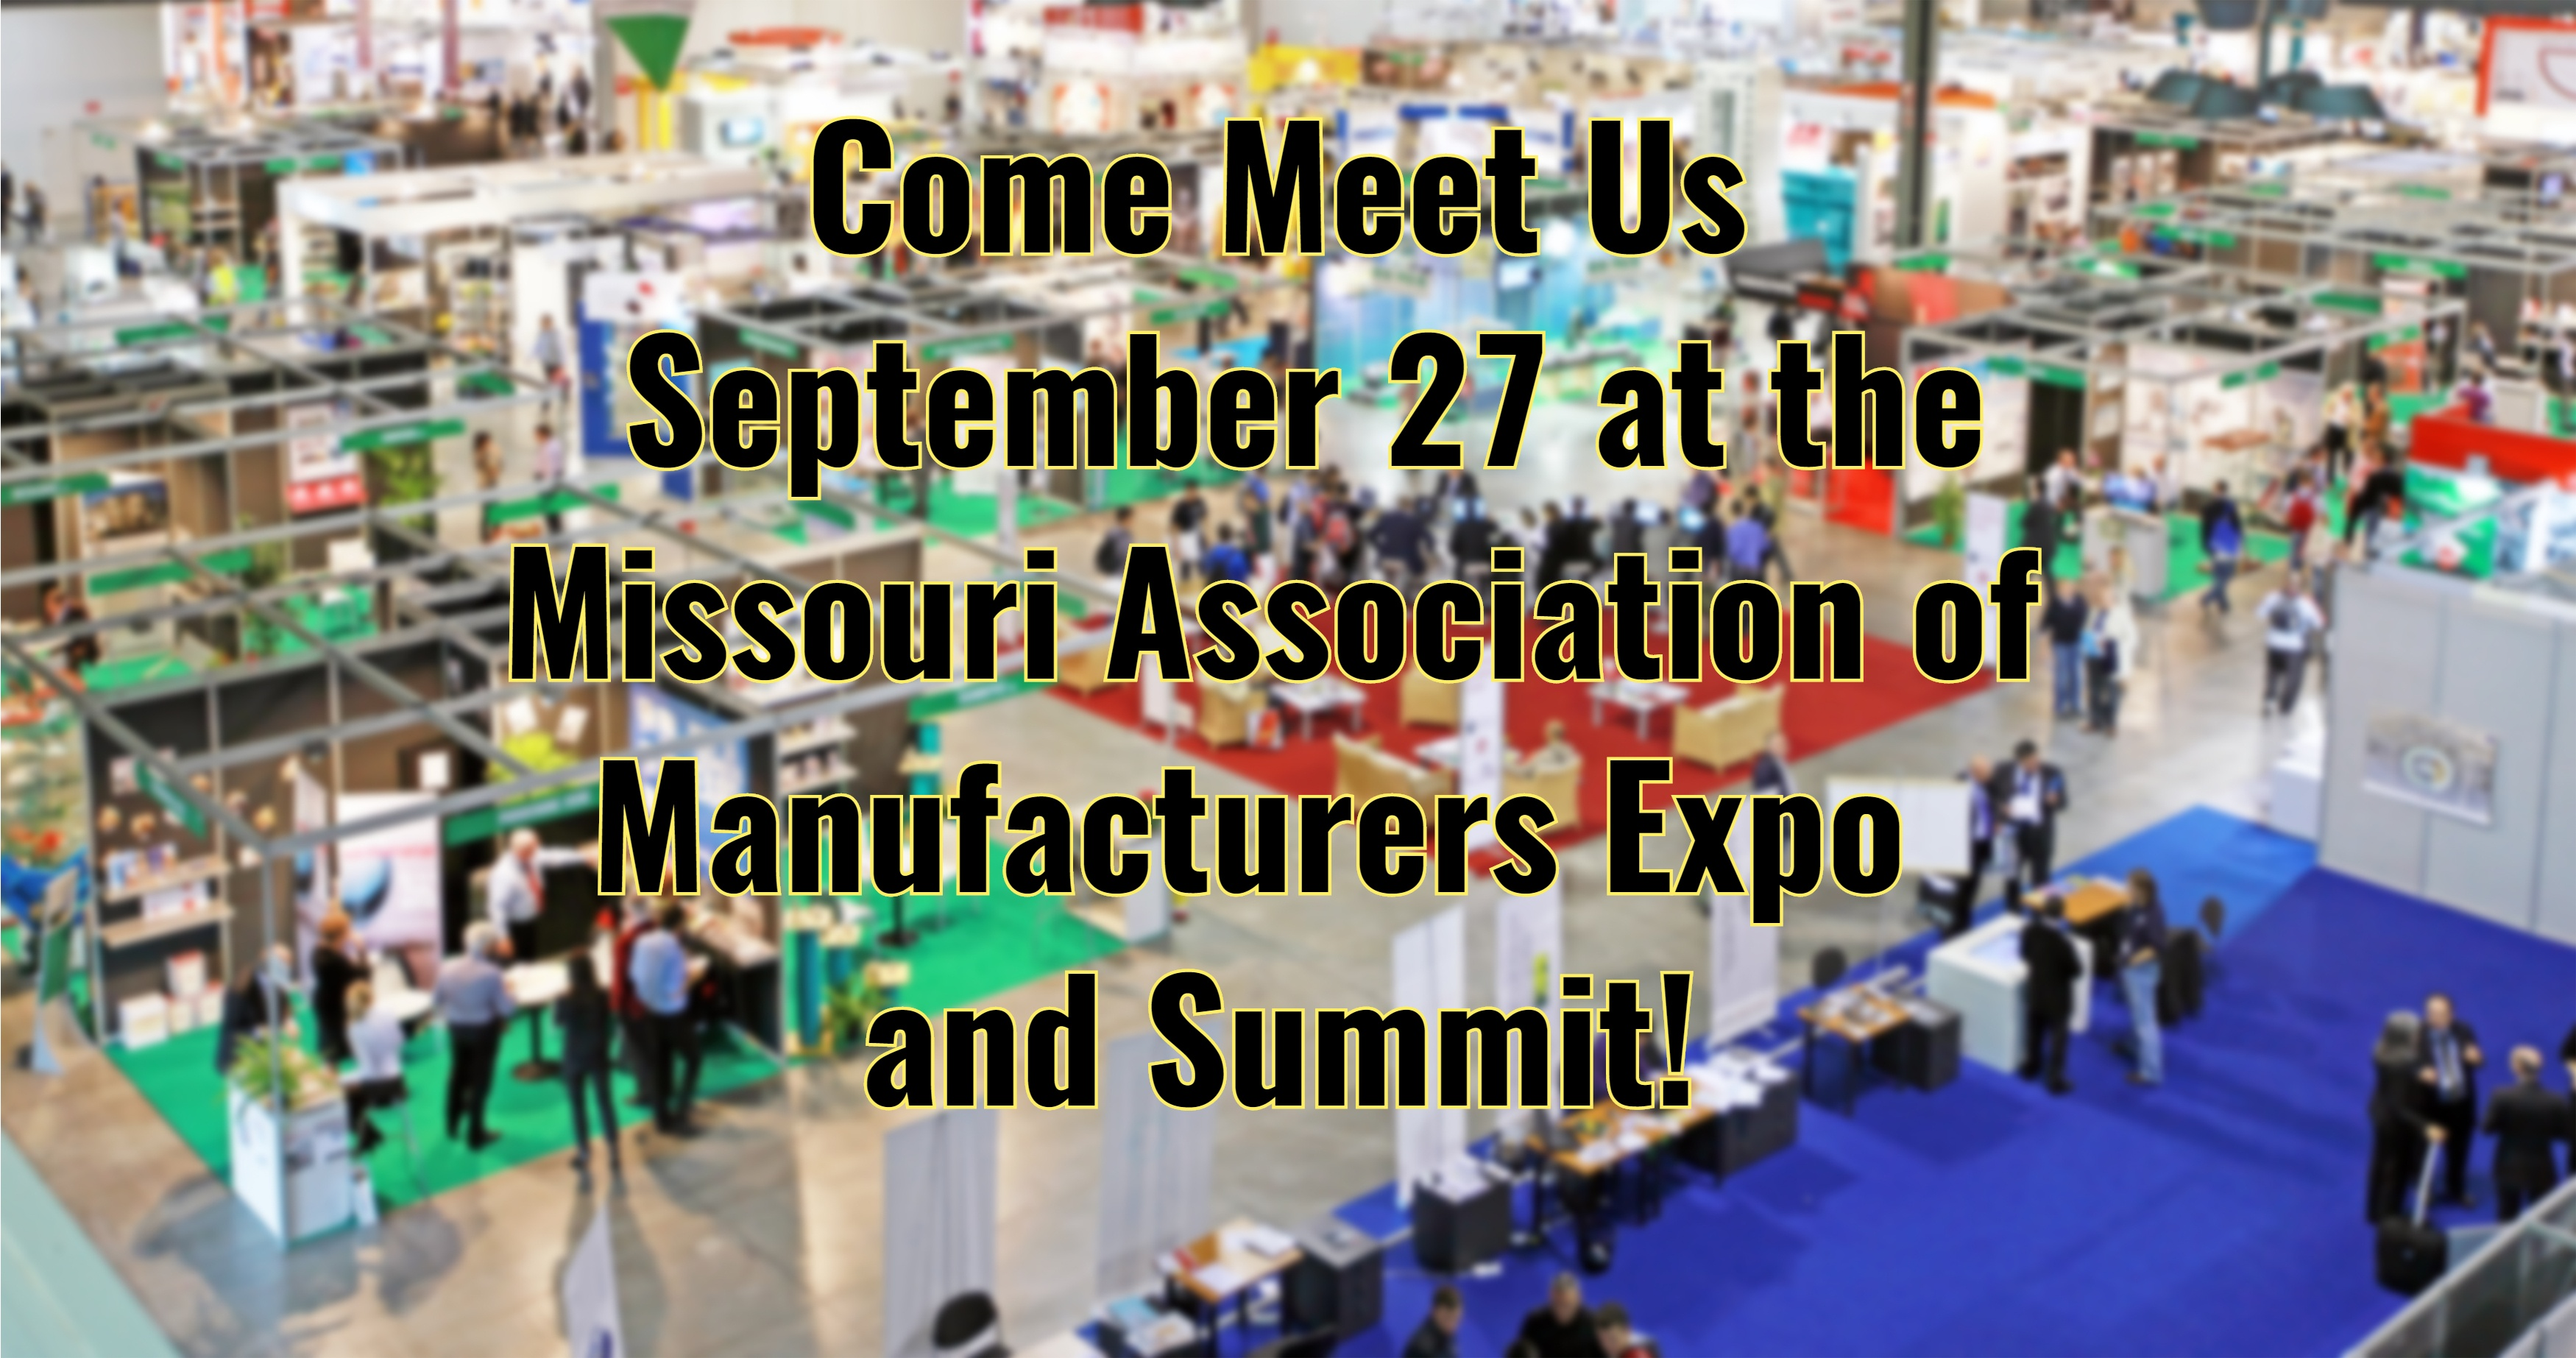 Meet Datix at the Missouri Association of Manufacturers Summit and Expo on September 27!